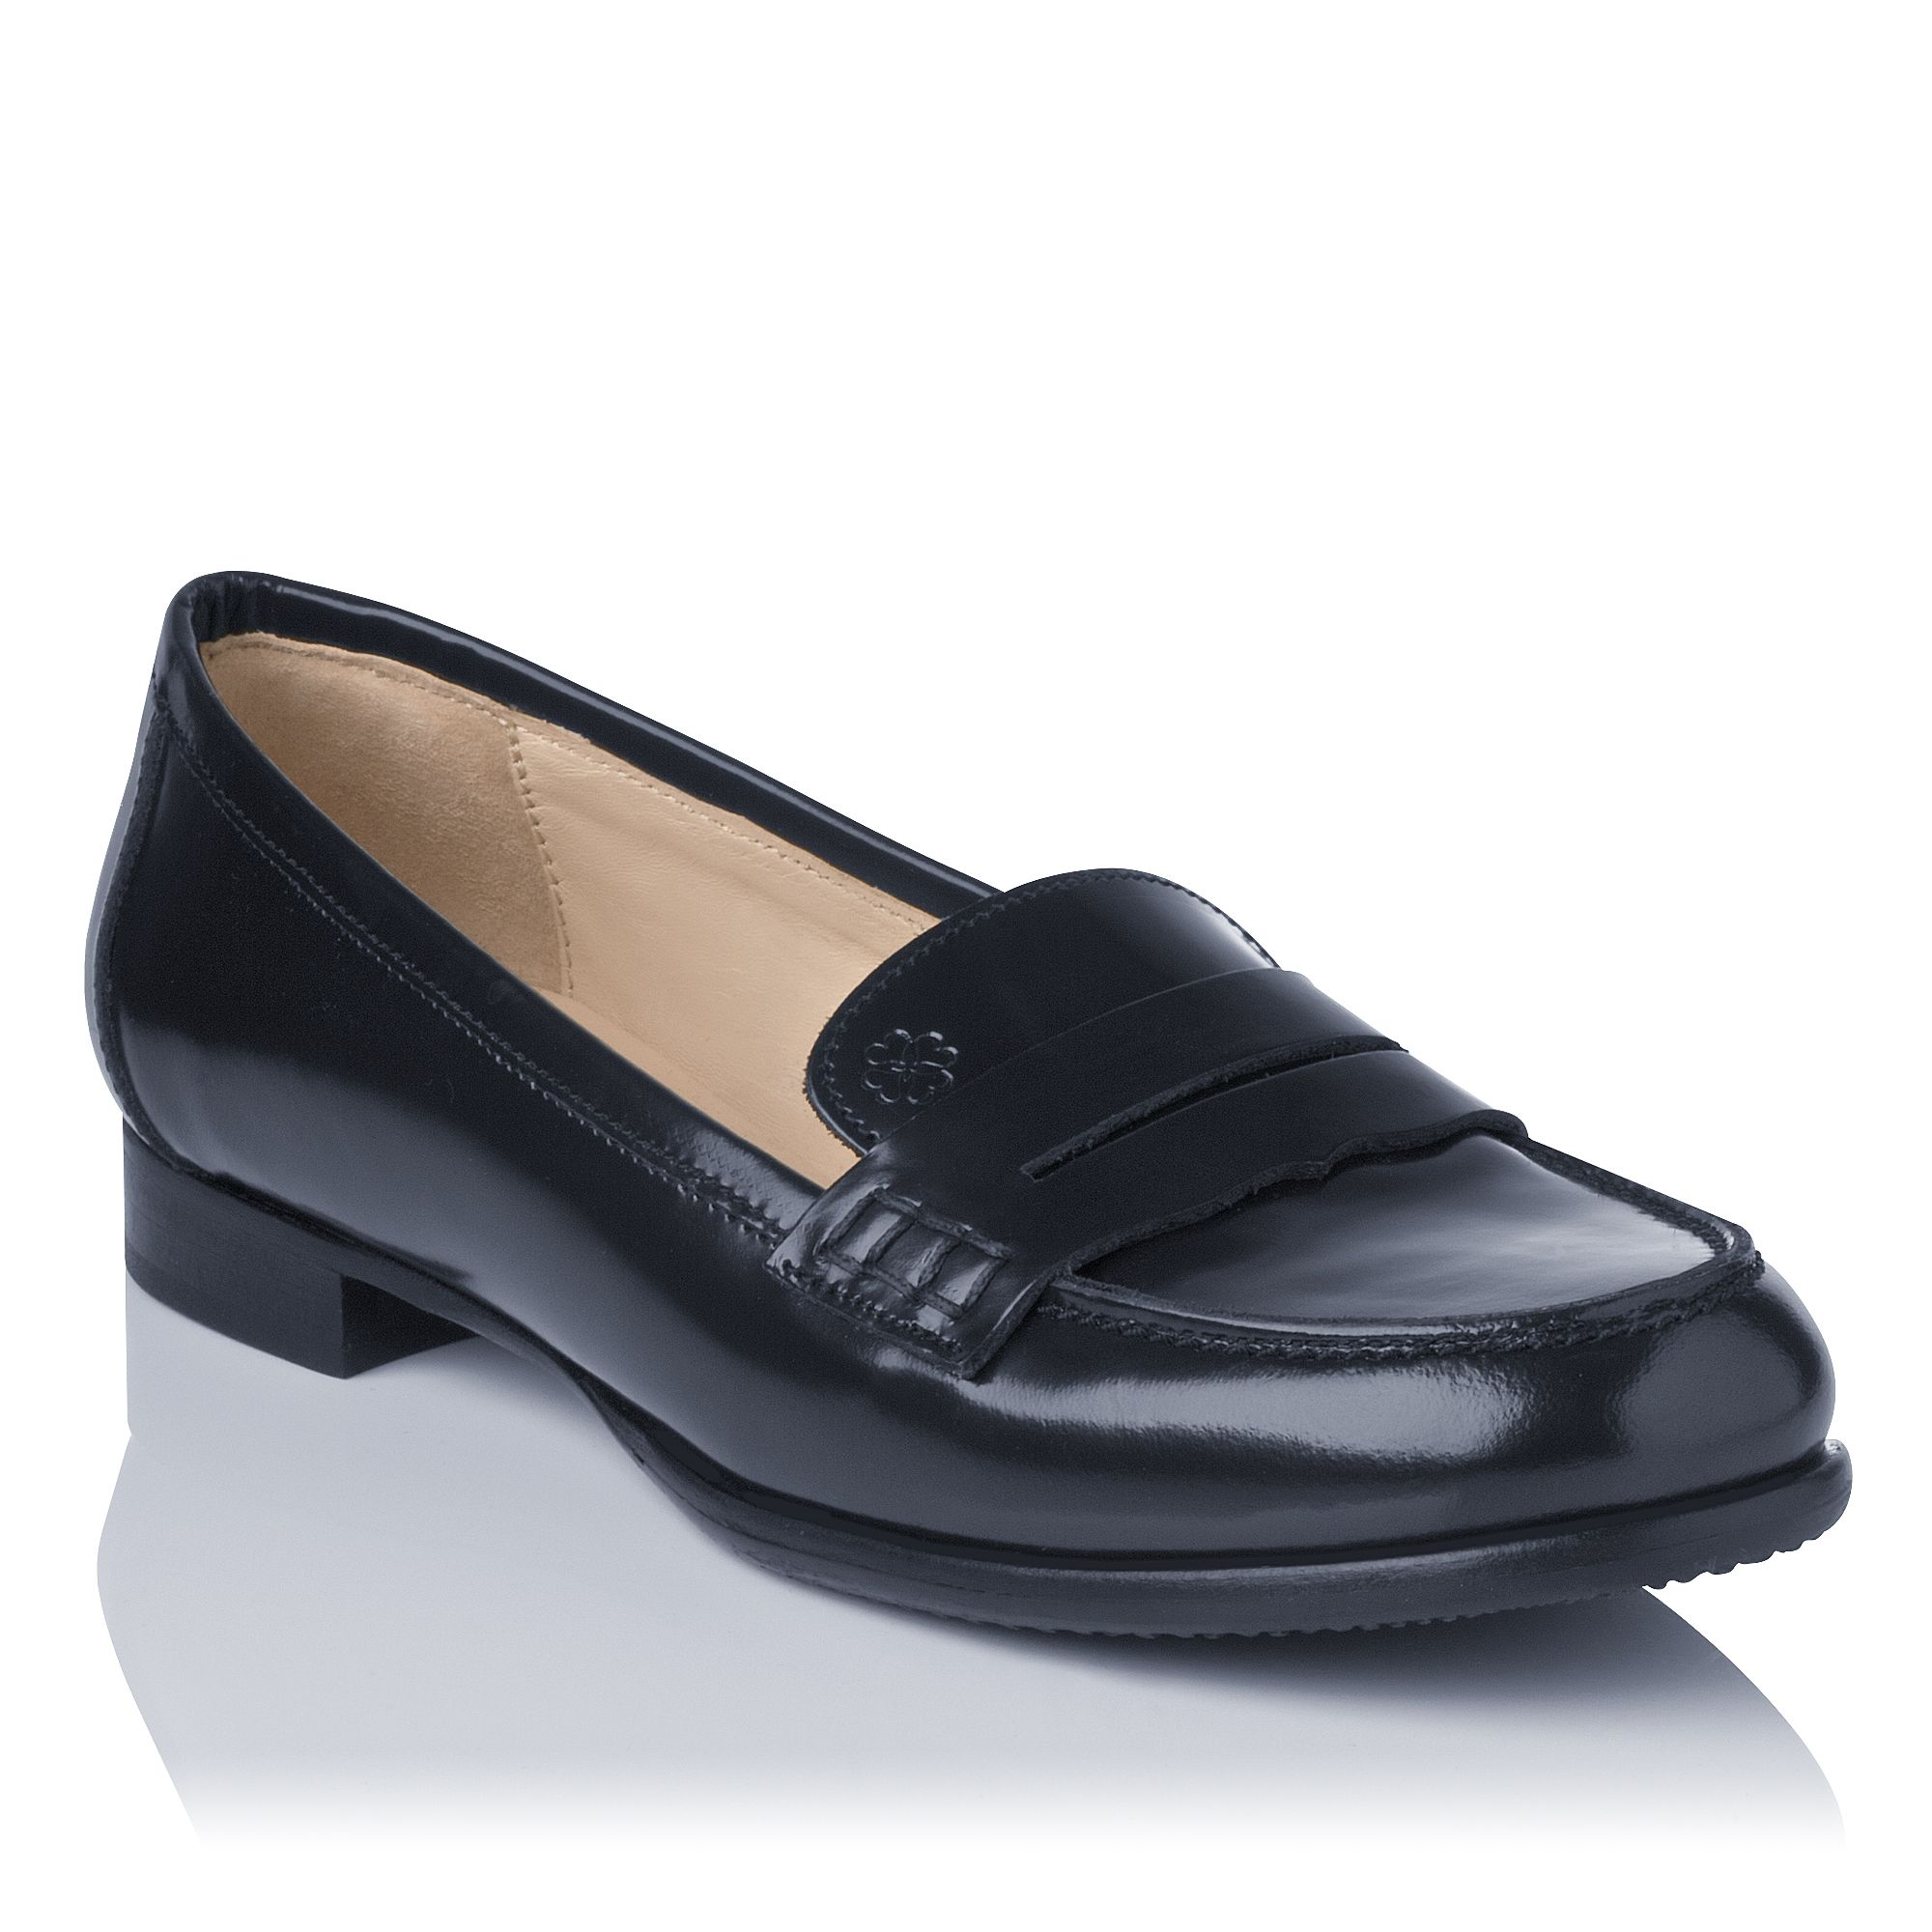 Vera leather flat round toe loafers